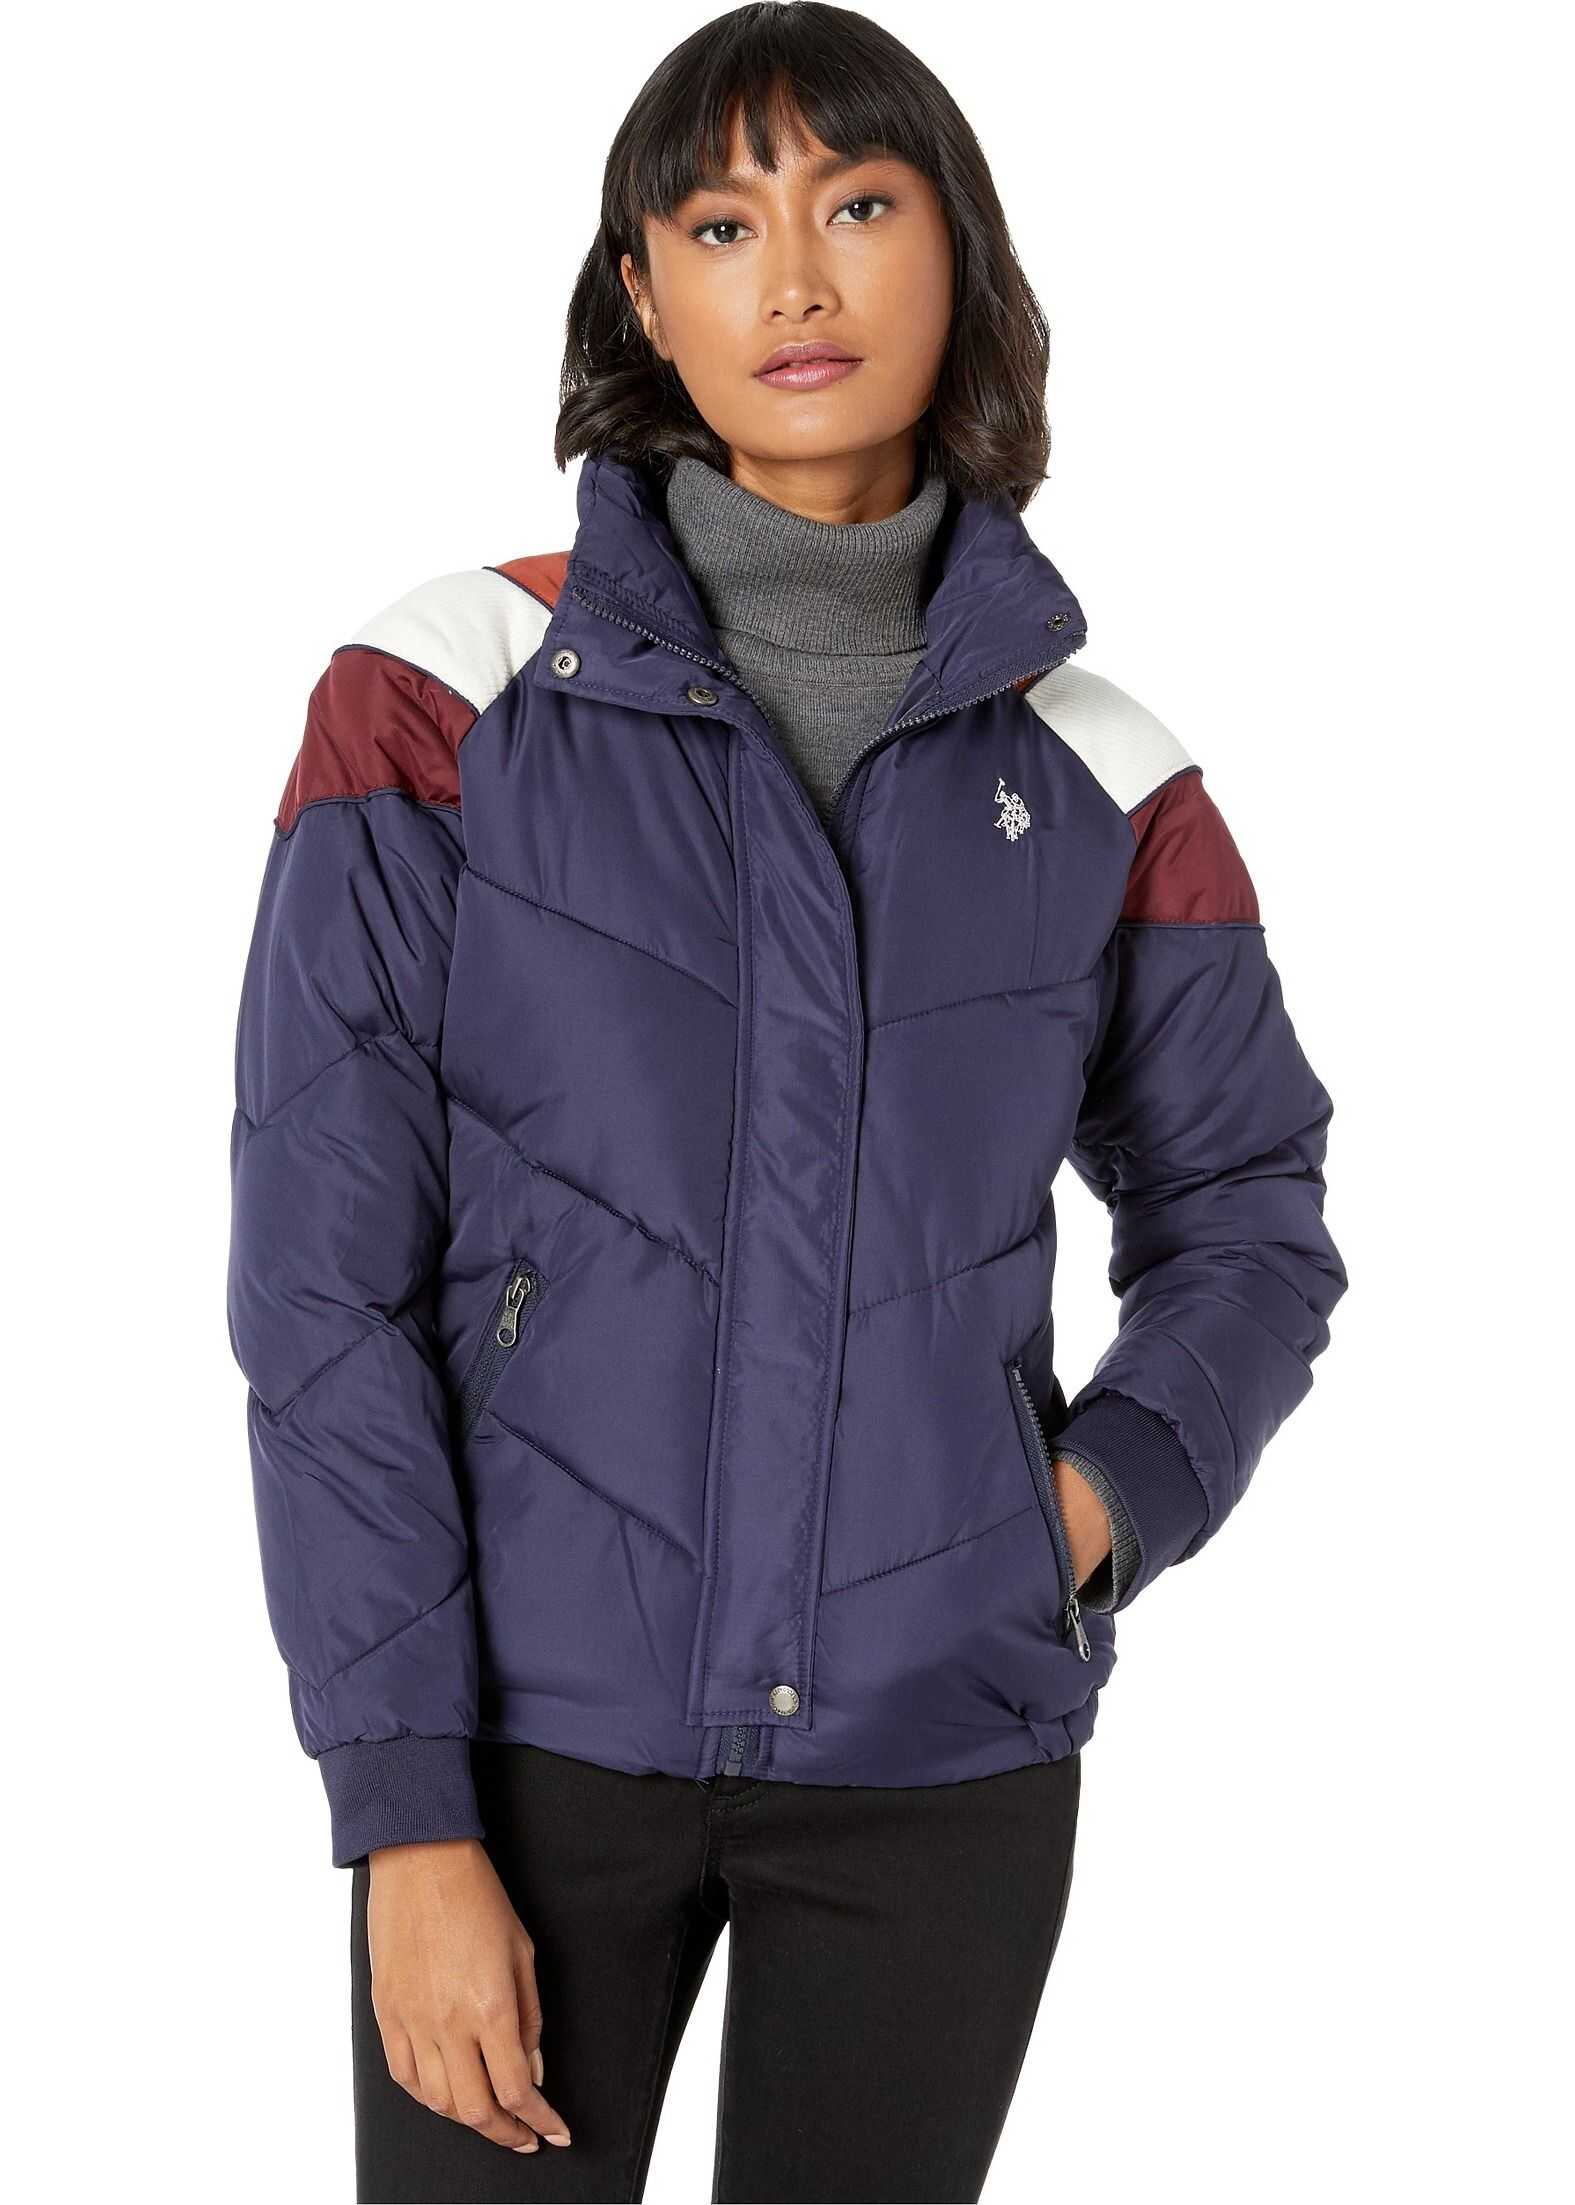 U.S. POLO ASSN. Puffer Jacket with Corduroy Evening Blue